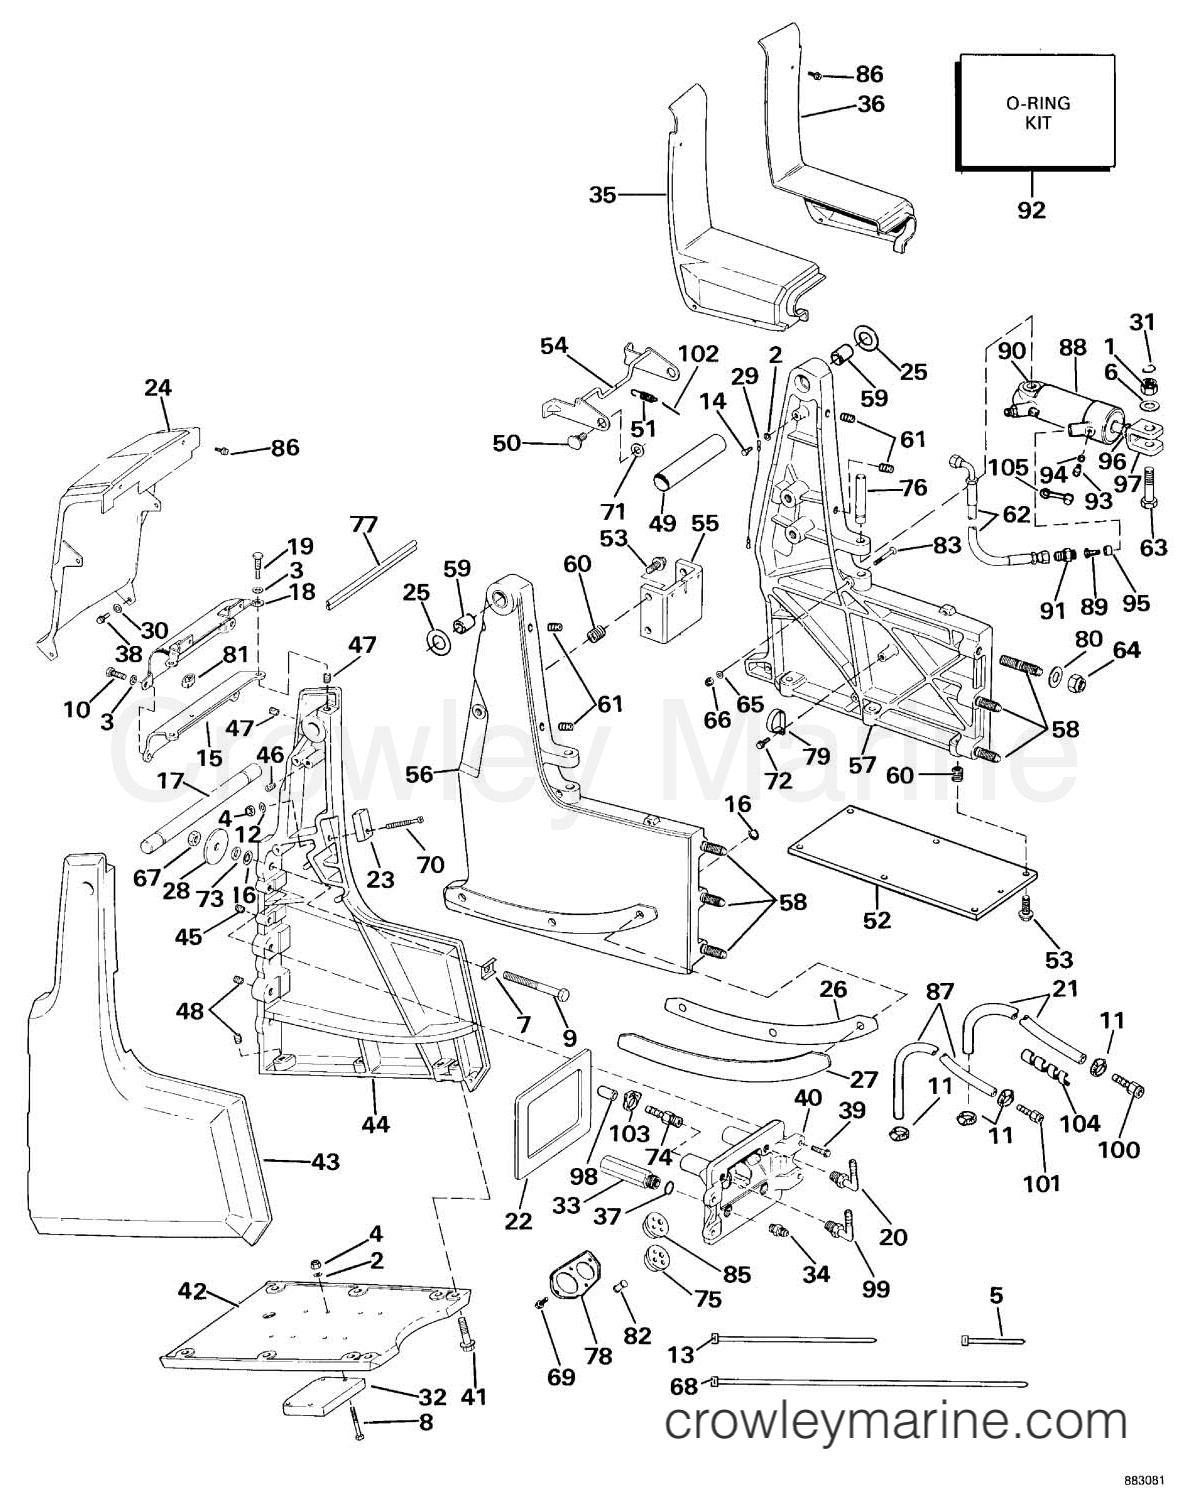 transom bracket assembly hydraulic steering 1989 omc sea drive rh crowleymarine com OMC Key Switch Wiring Diagram Johnson Outboard Tachometer Wiring Diagram